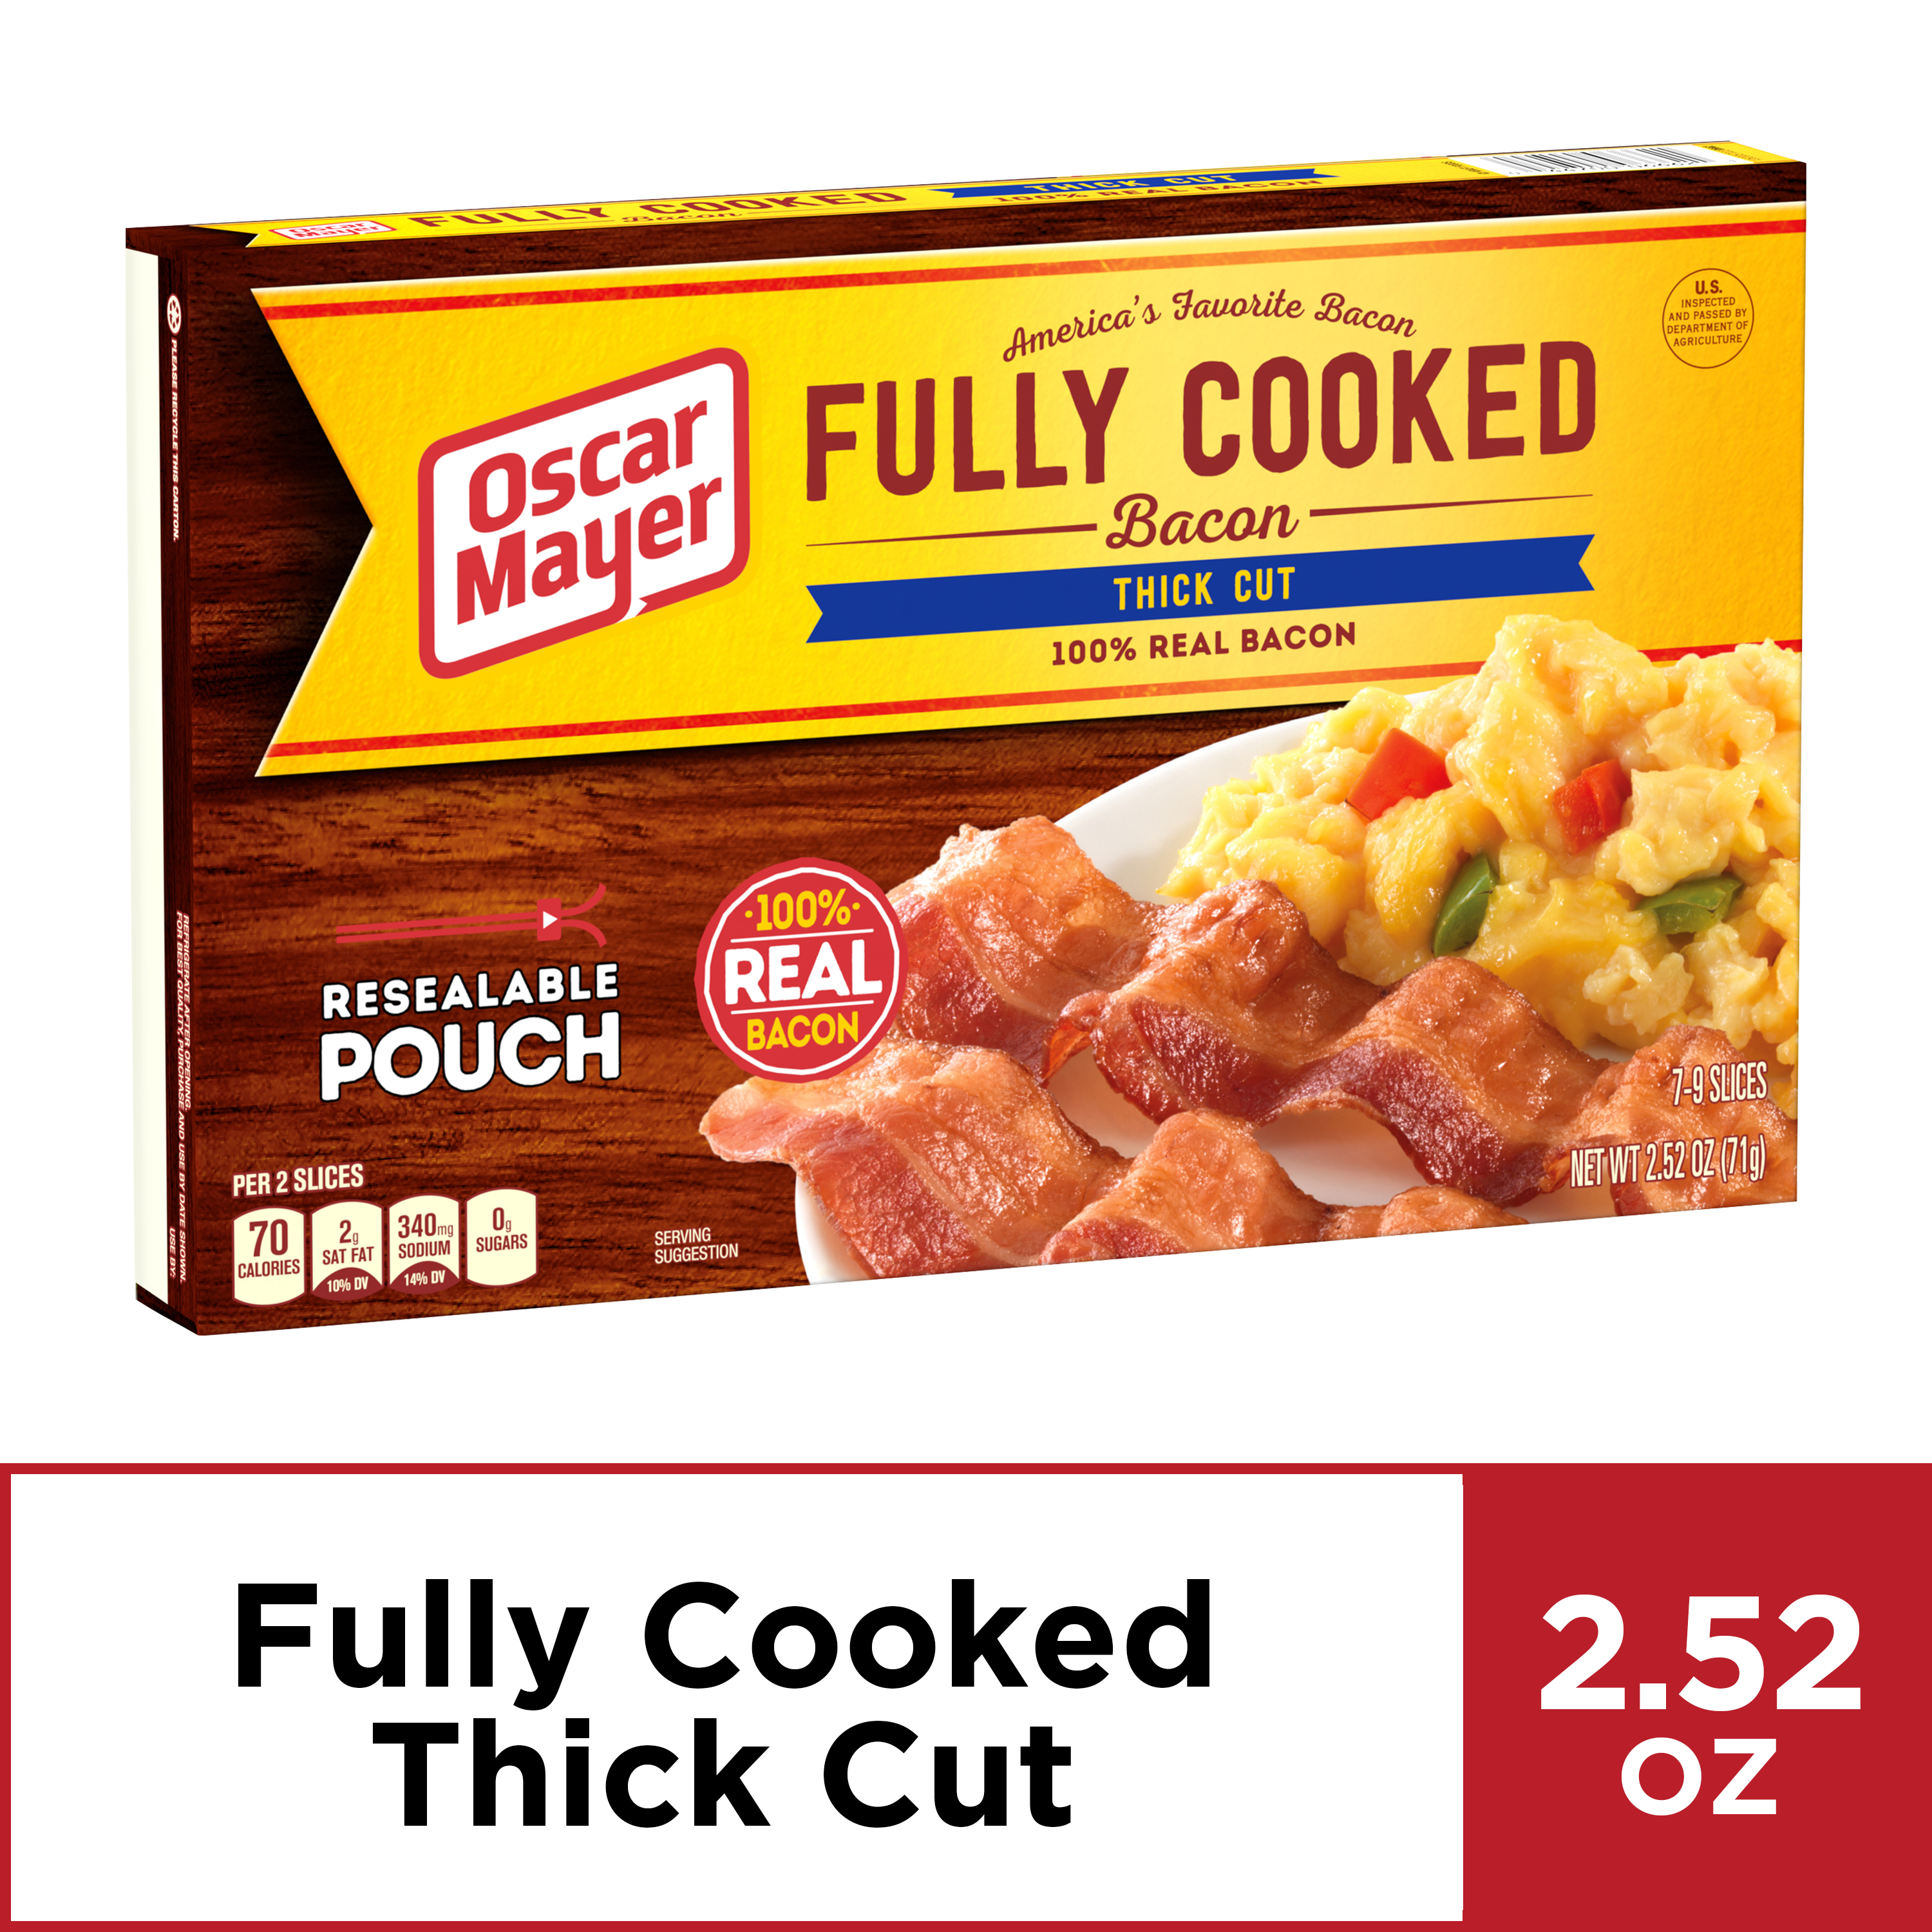 Fully Cooked Bacon, 2.52 oz Box